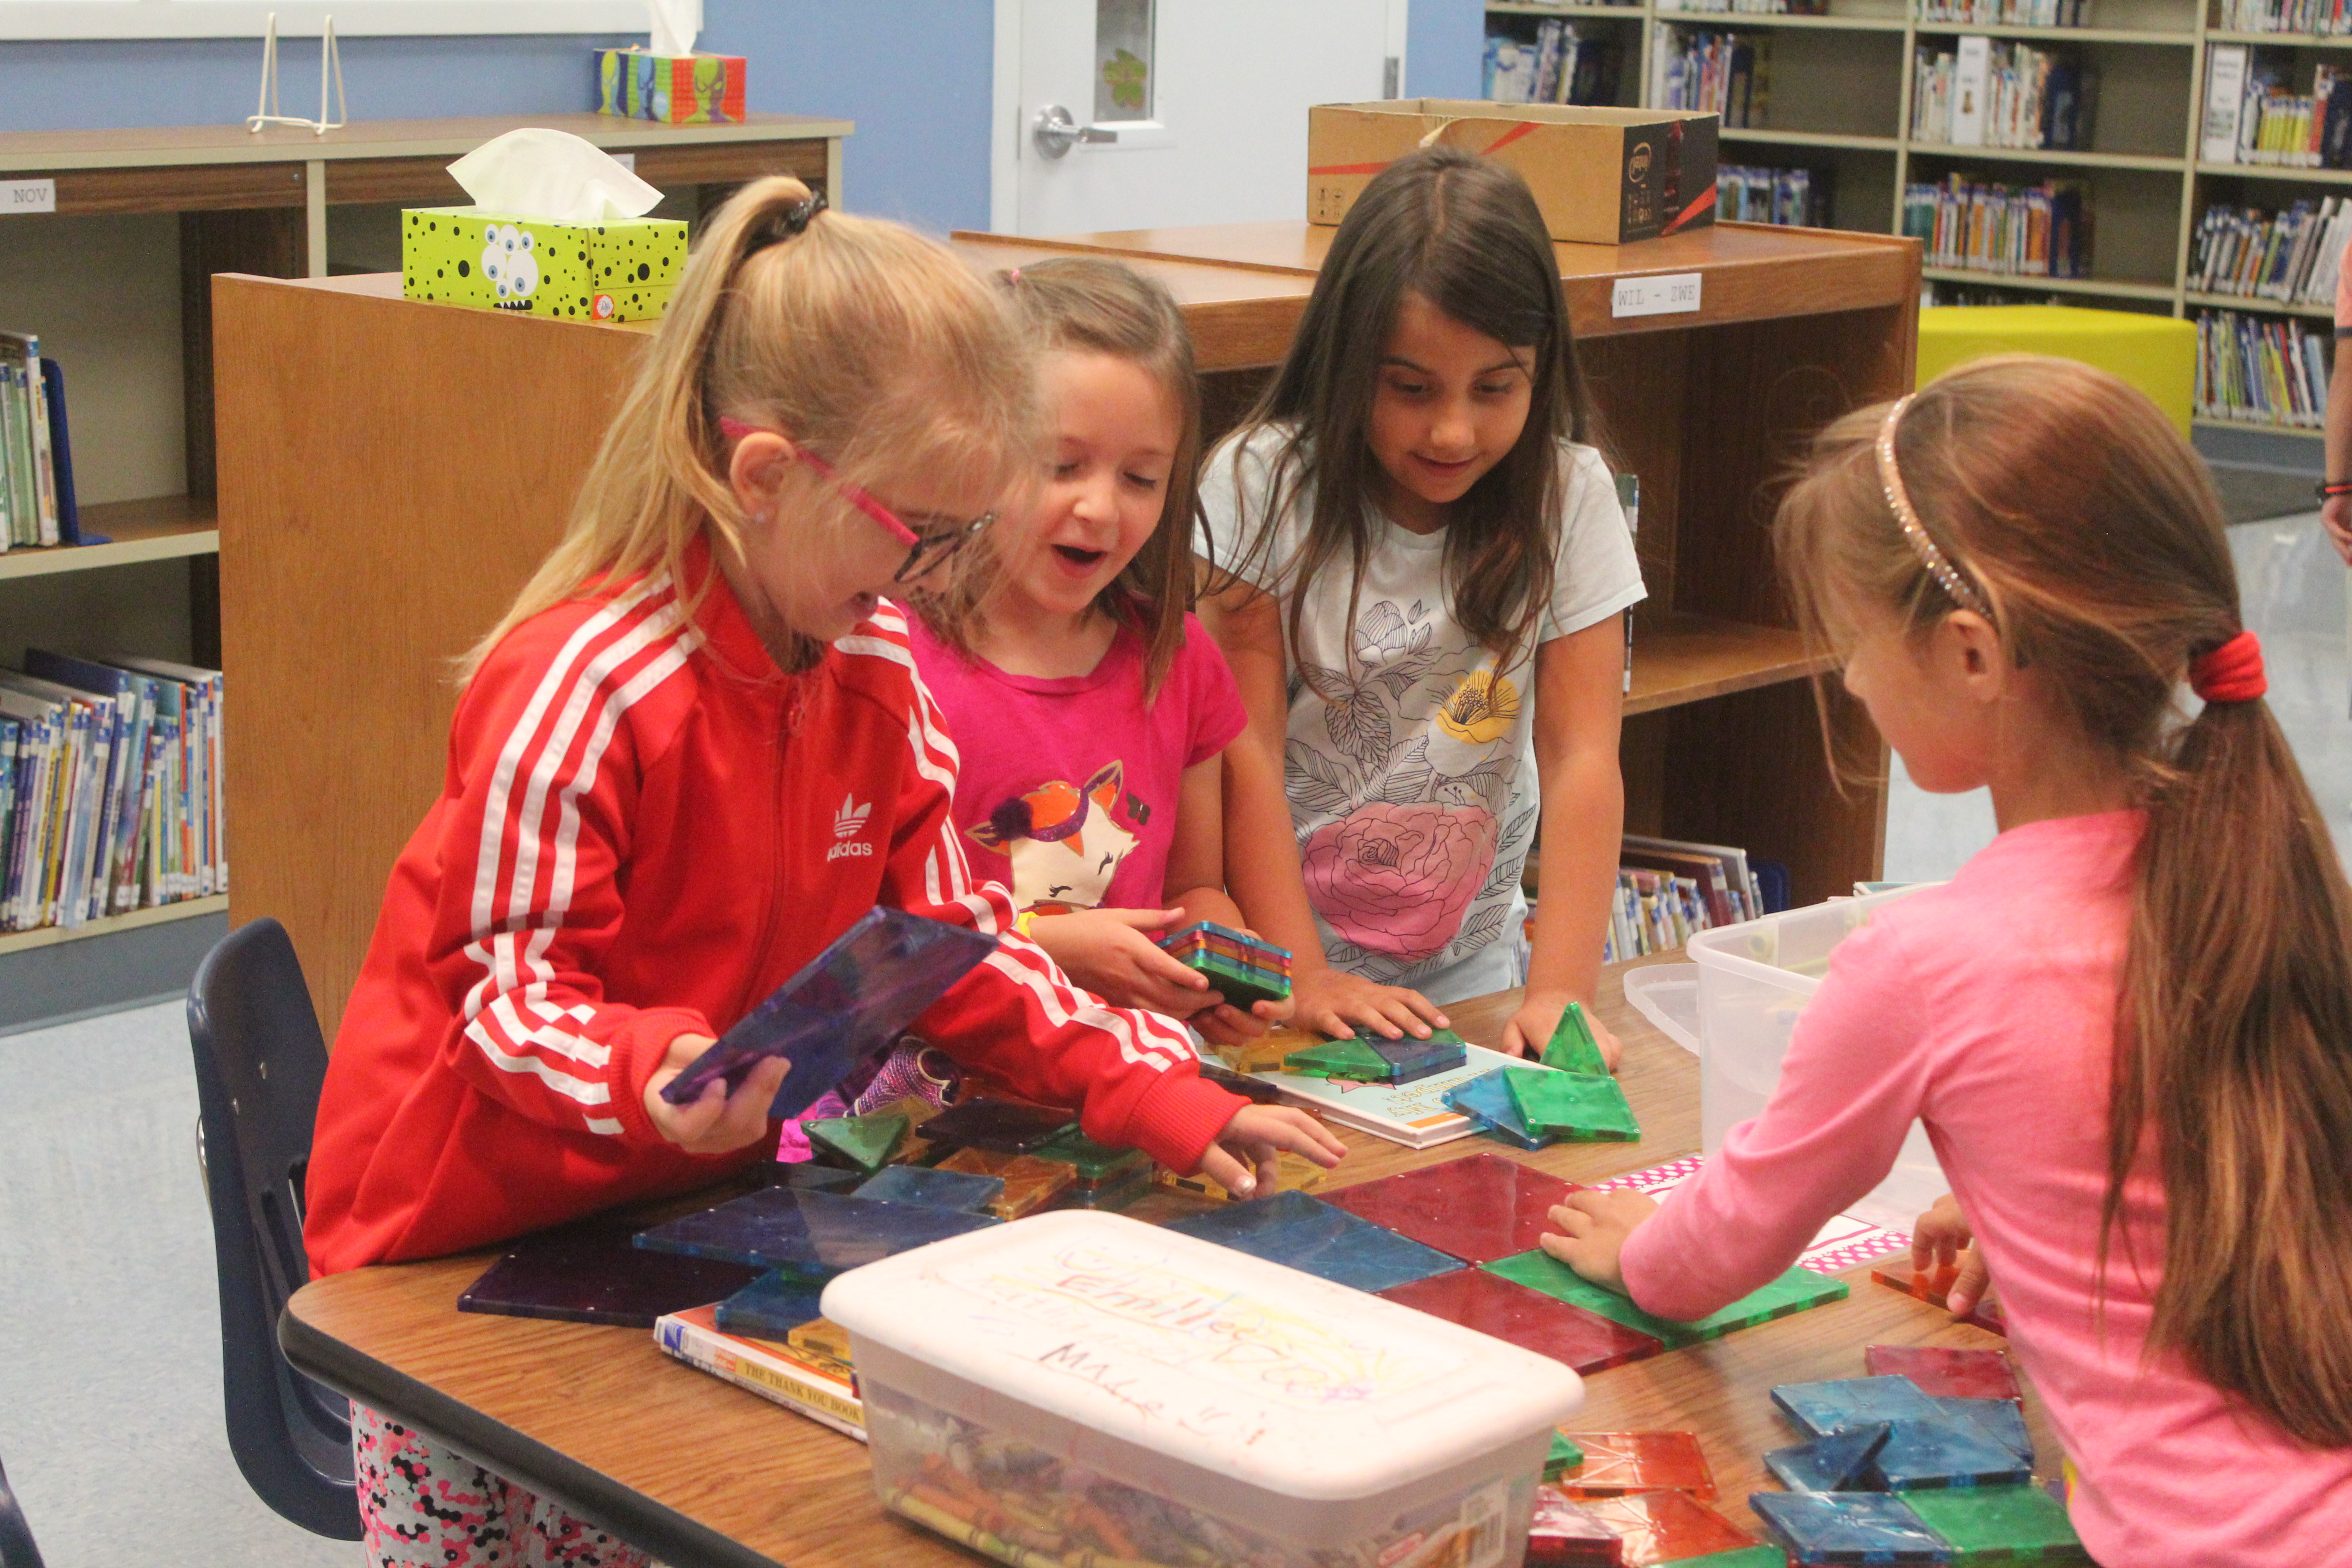 Four first graders help build a tower with magnetic blocks.